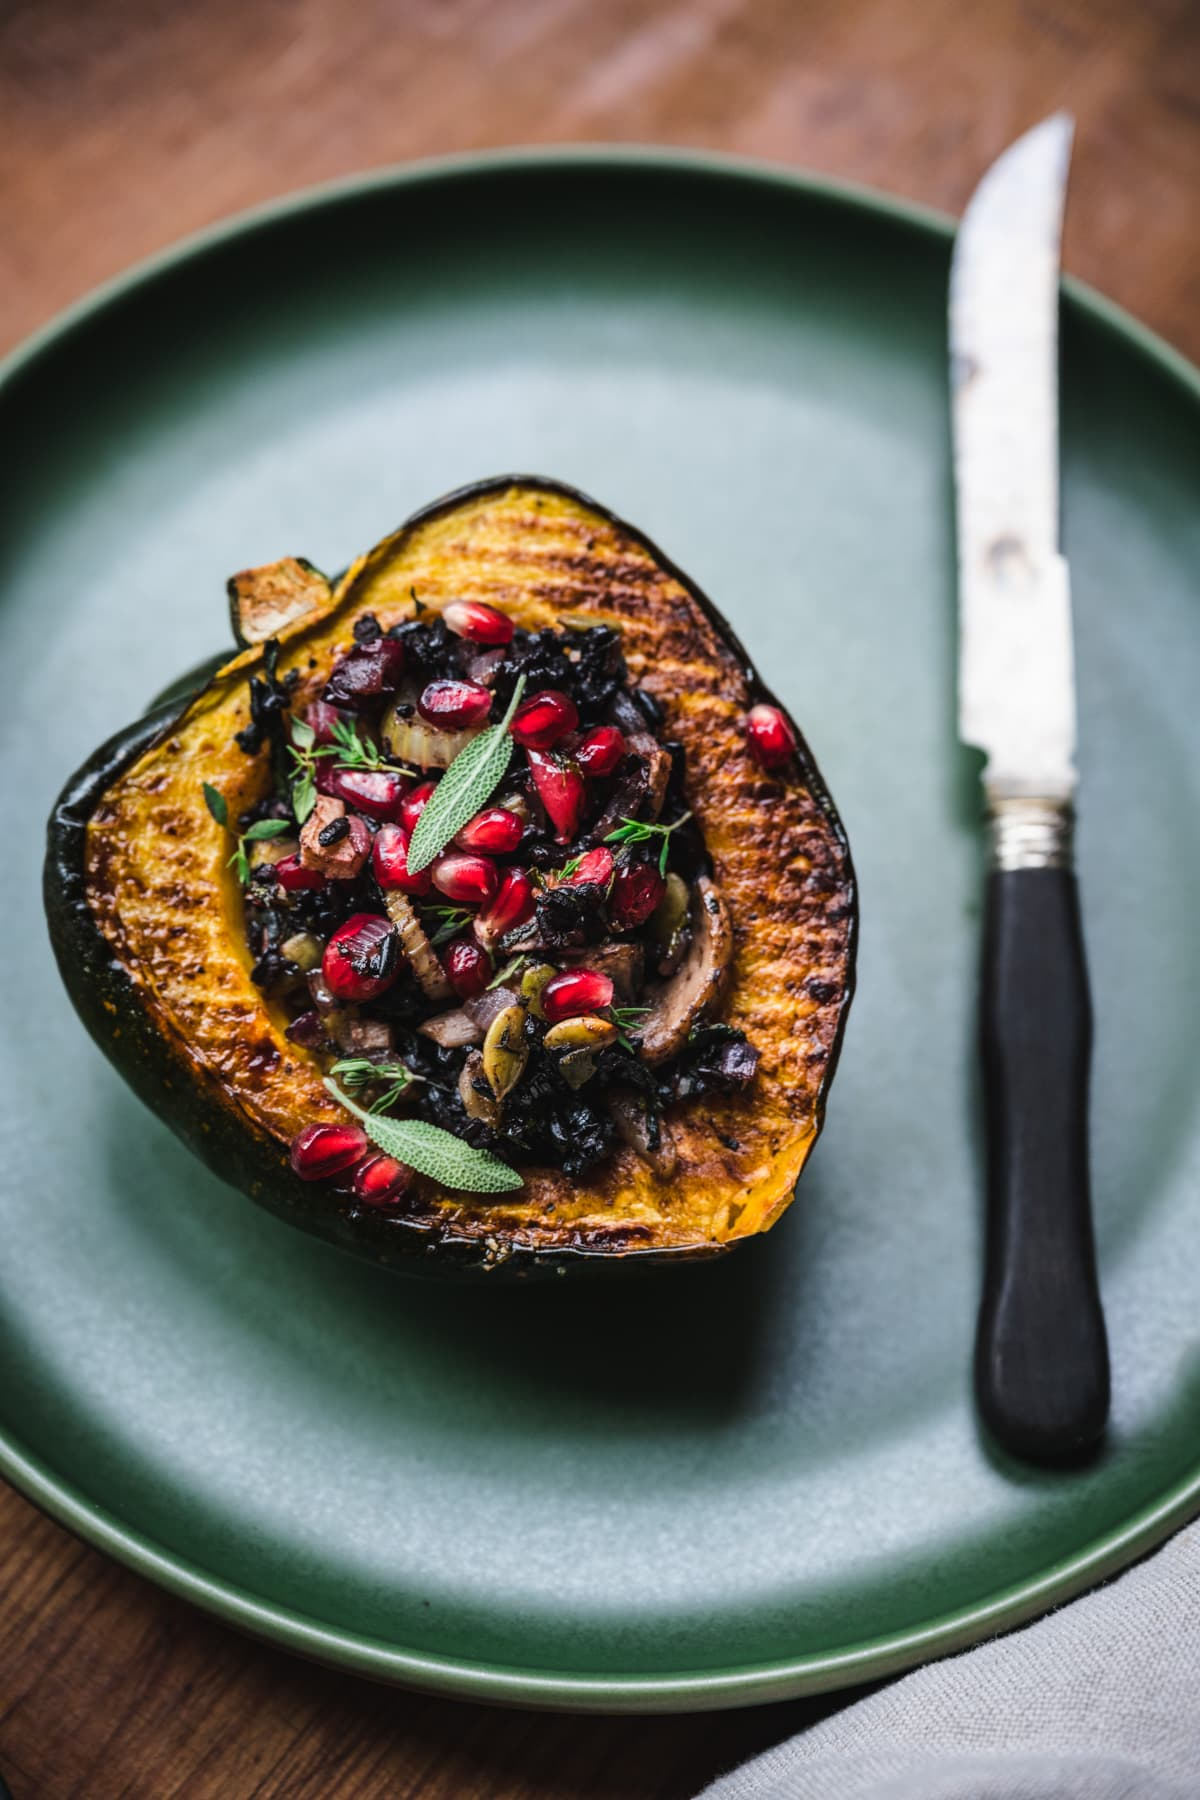 side view of vegan stuffed acorn squash with black rice, mushrooms and pomegranate seeds on top.